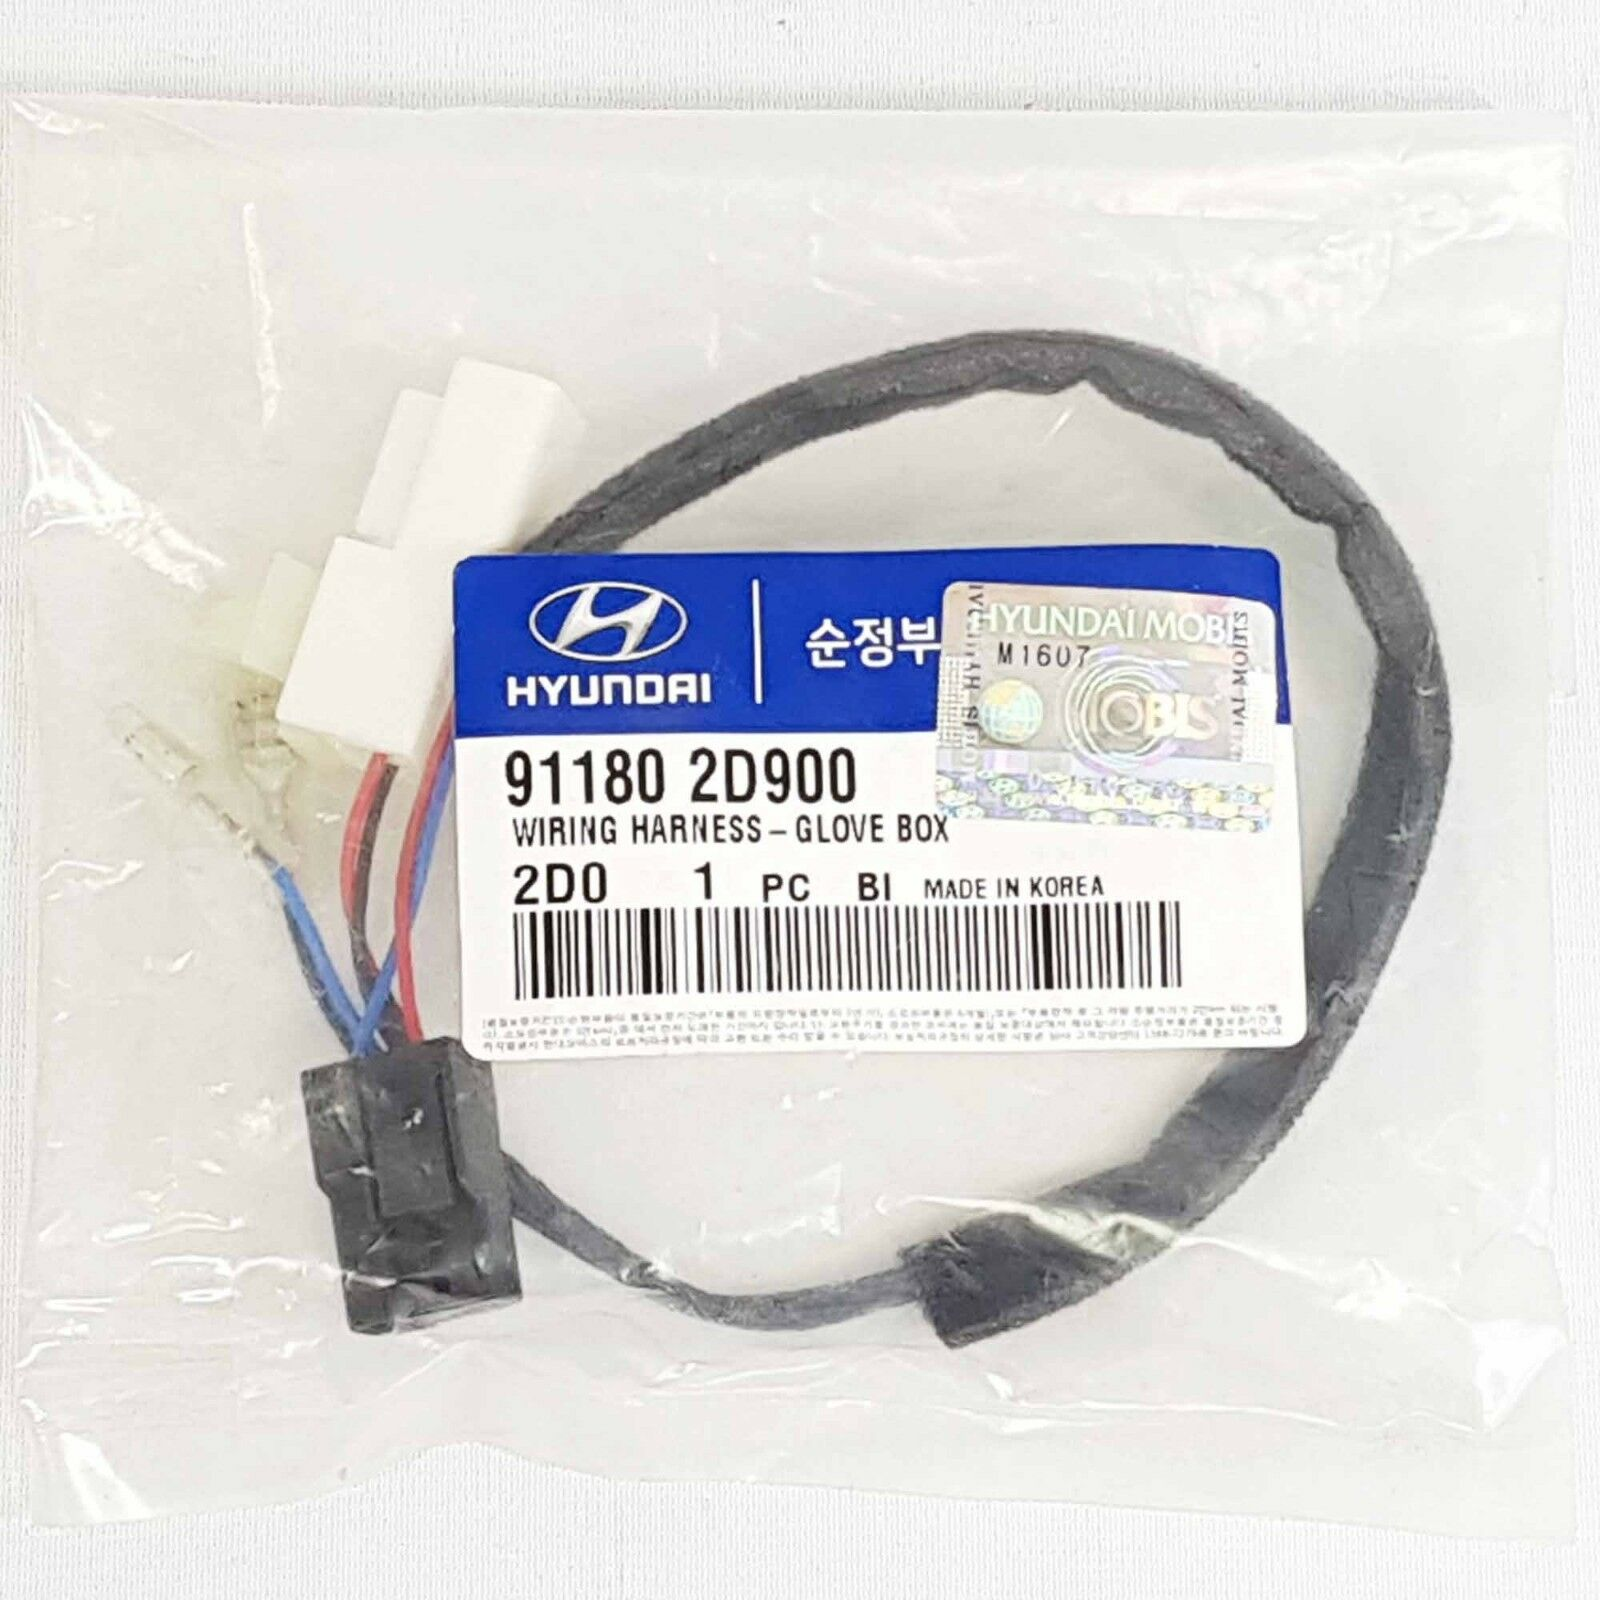 Genuine 911802D900 Wiring Harness- G Box For KIA ... on miata wiring harness, pt cruiser wiring harness, 4runner wiring harness, camry wiring harness,